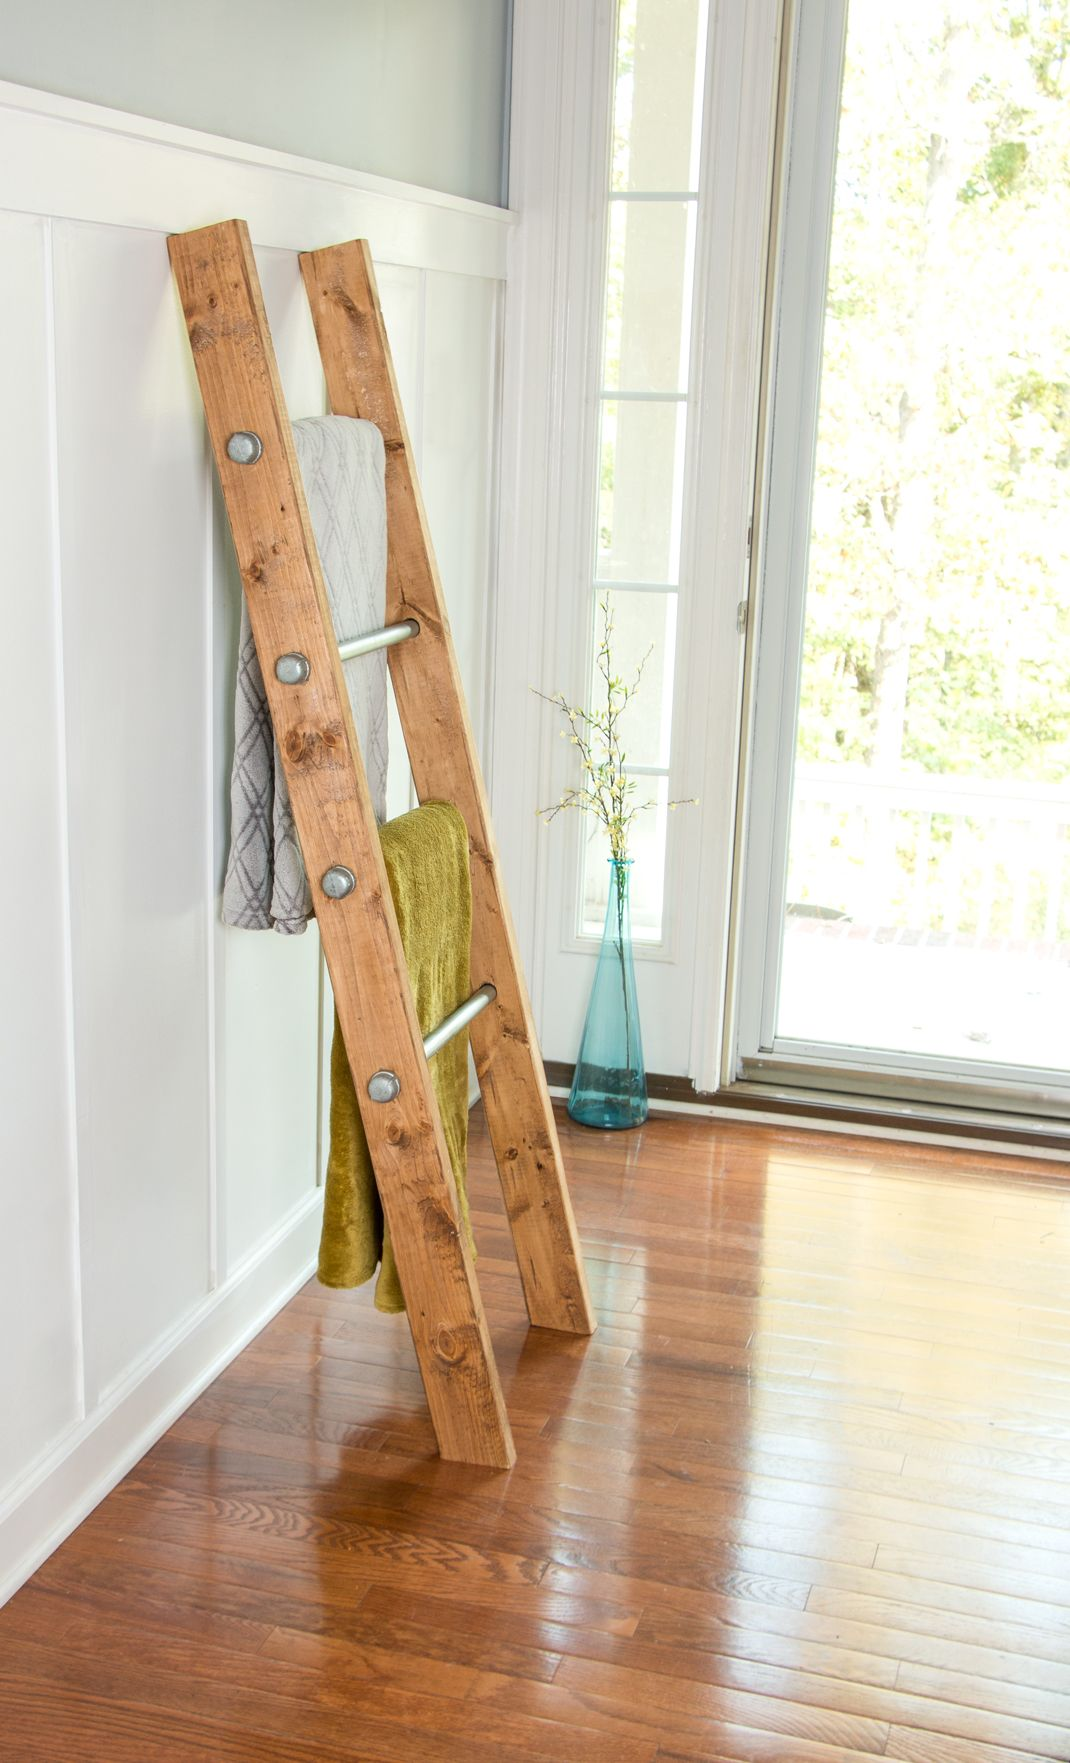 Buy a Custom Made Wooden Ladder W/ Industrial Pipe - Blanket ... : rustic ladder quilt rack - Adamdwight.com